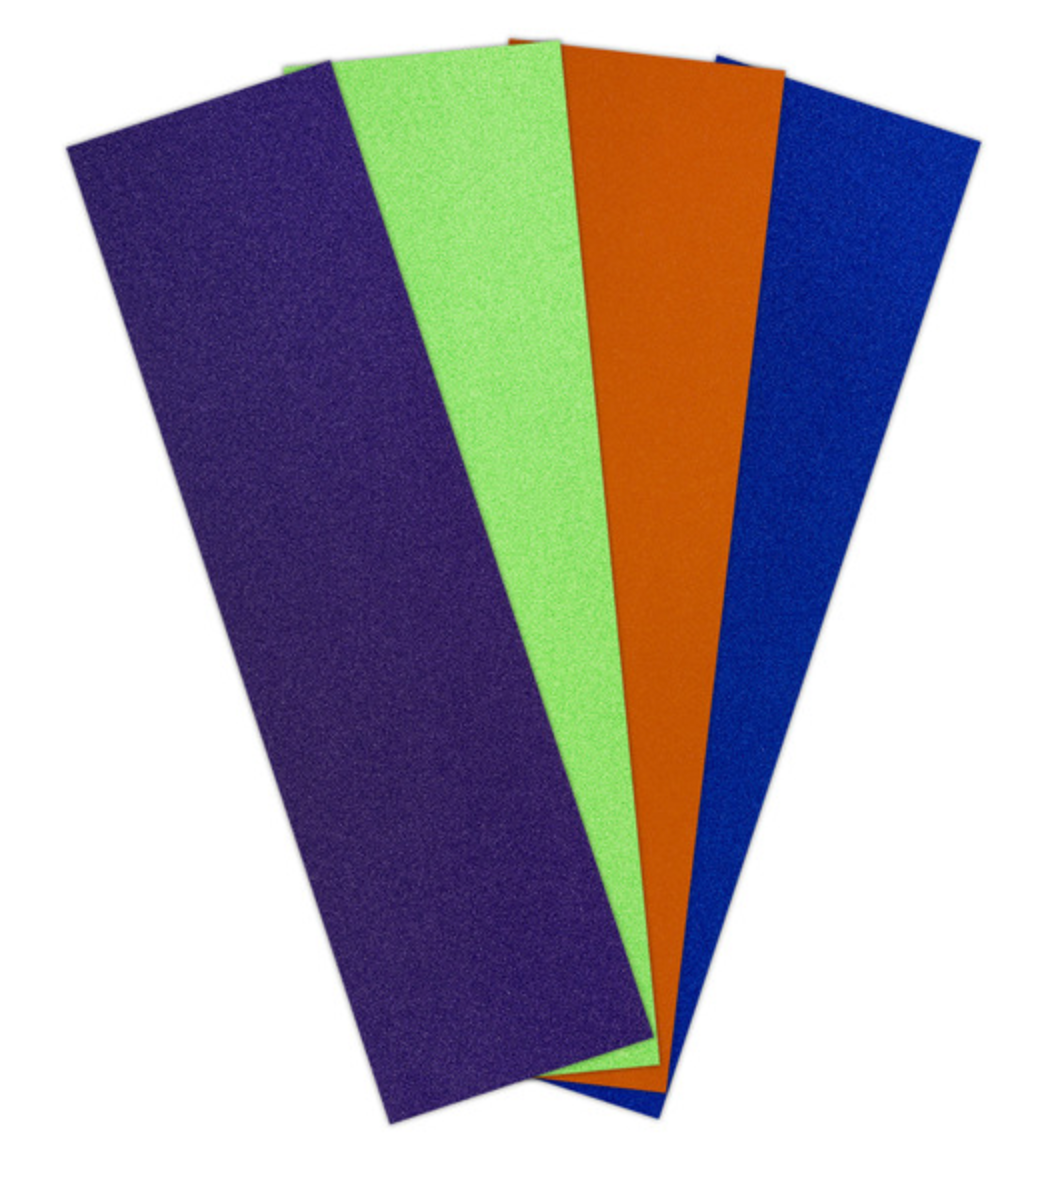 Grip Tape by Jessup USA in Purple, green, orange, and blue